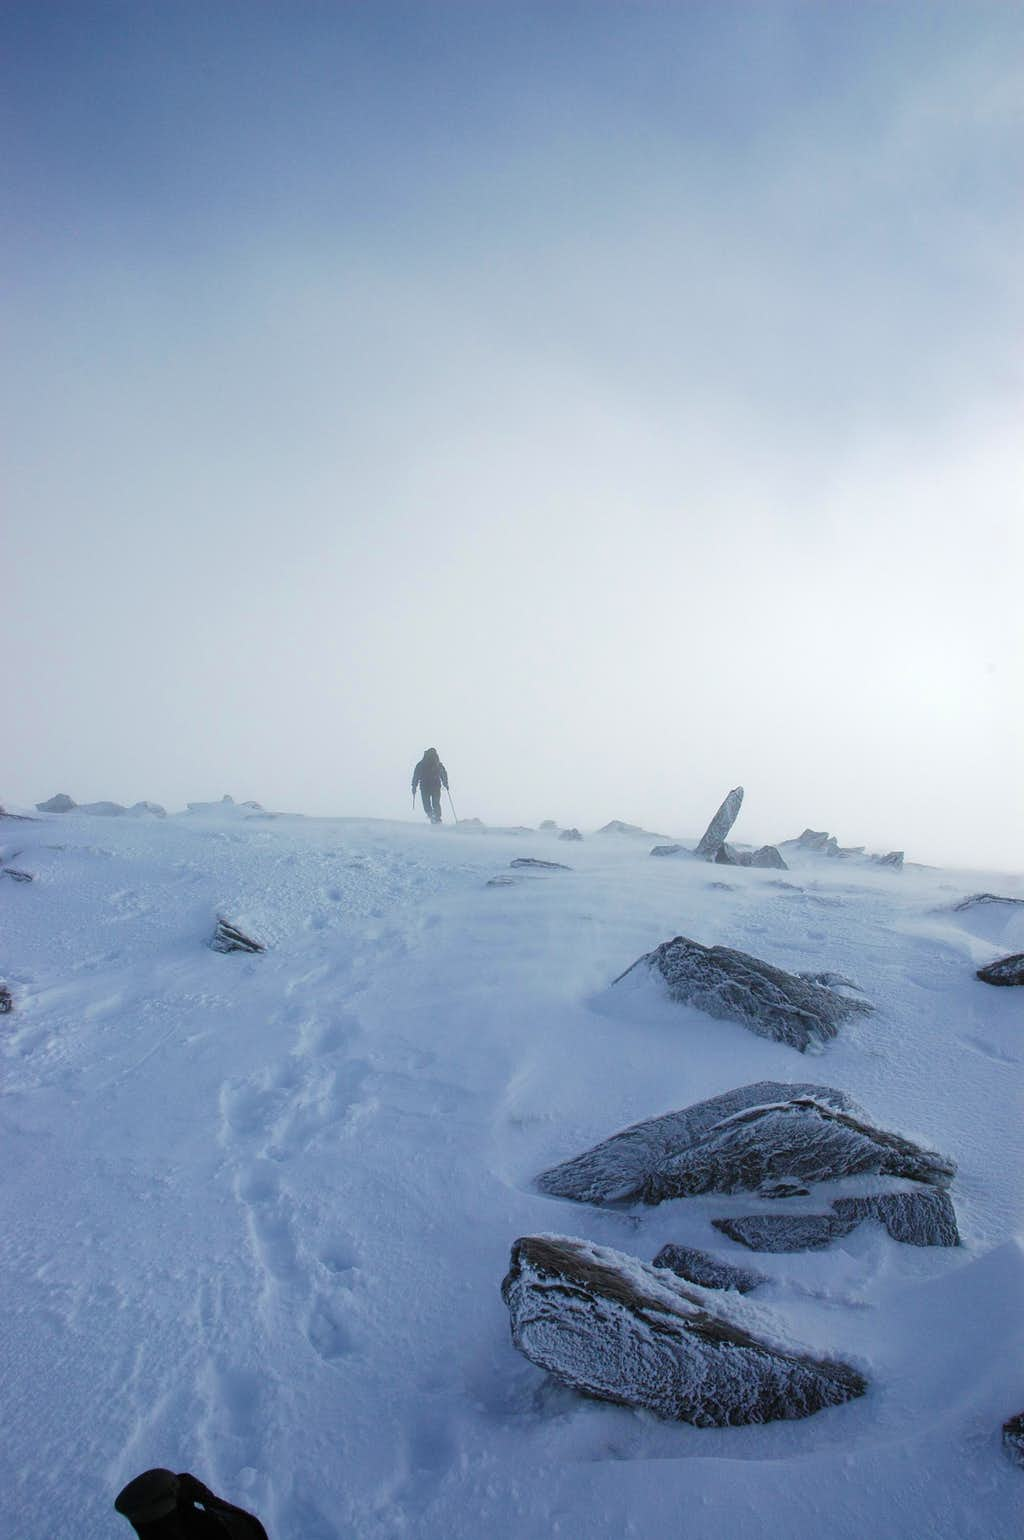 Summiting in the storm